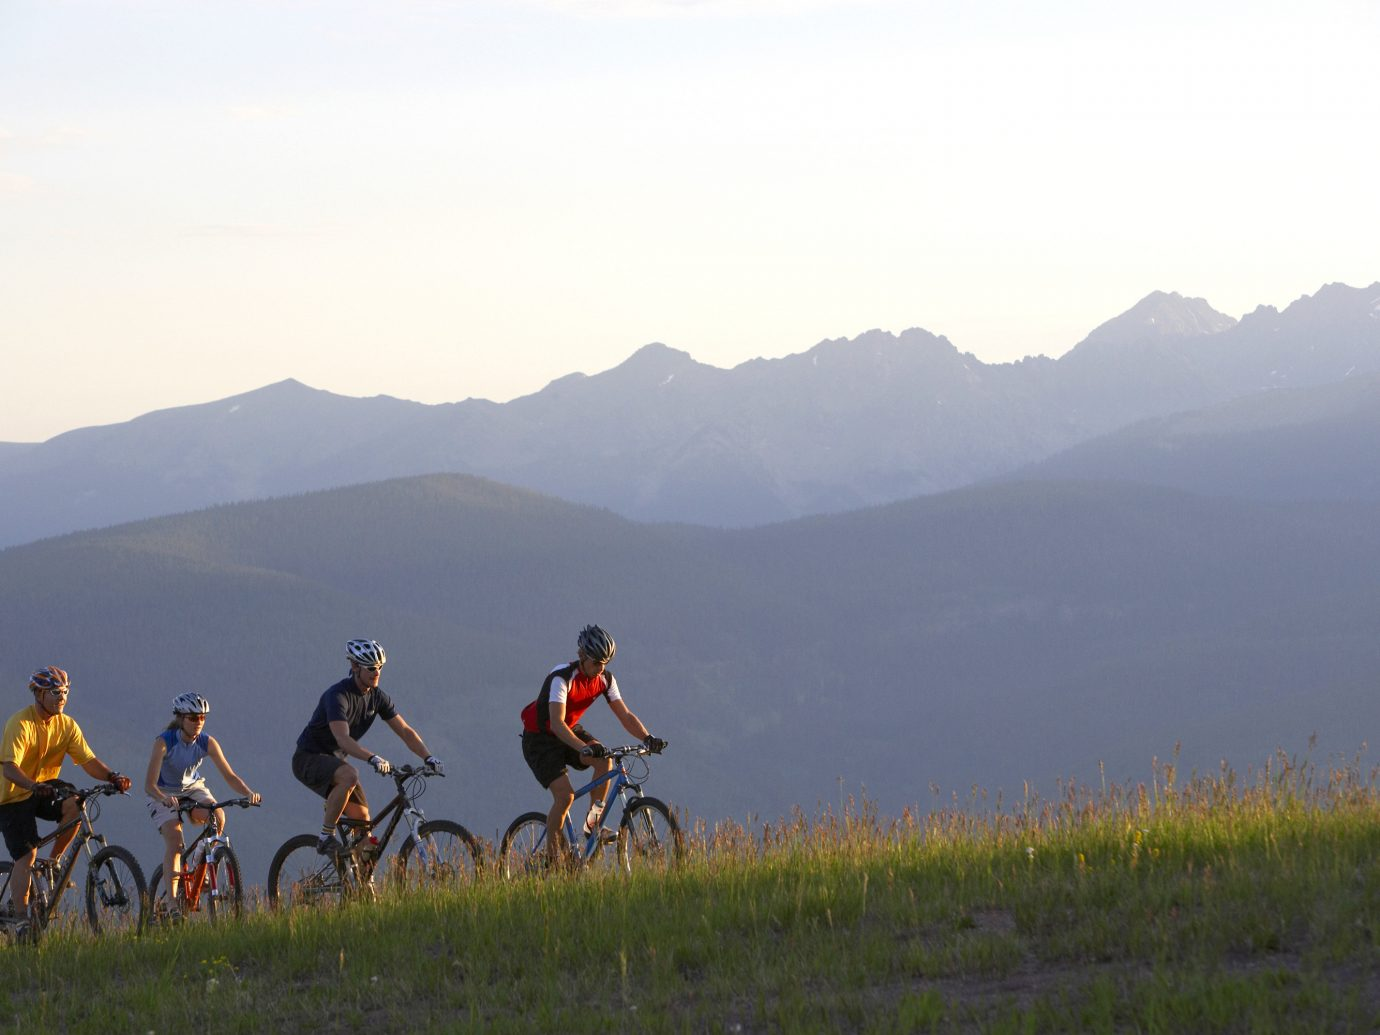 Mountains + Skiing Outdoors + Adventure grass sky outdoor mountain mountainous landforms mountain bike mountain biking bicycle cycle sport cycling mountain range vehicle sports ridge extreme sport freeride grassy